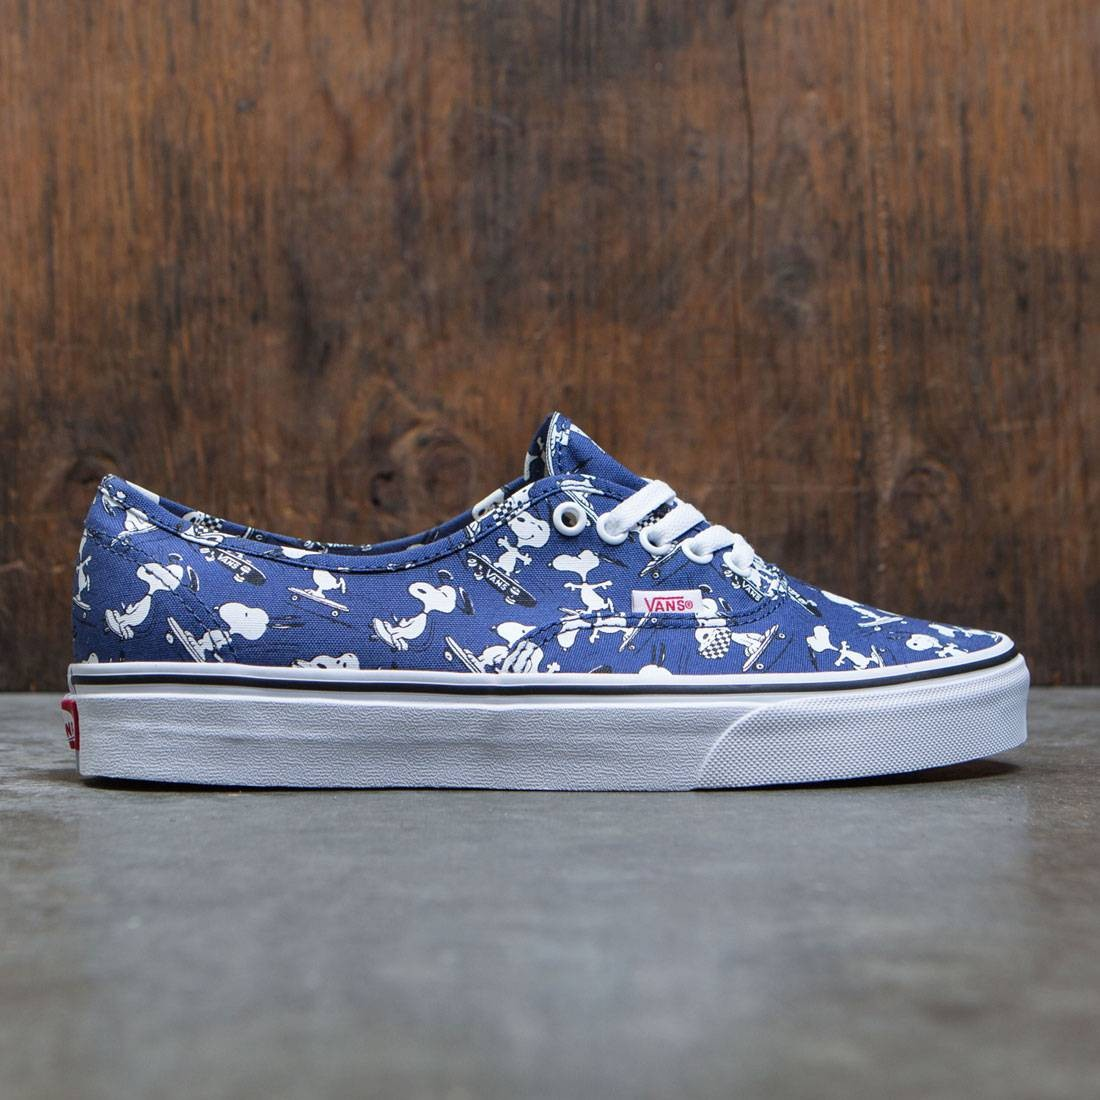 6de09dabadfd Vans x Peanuts Men Authentic - Snoopy Skating blue